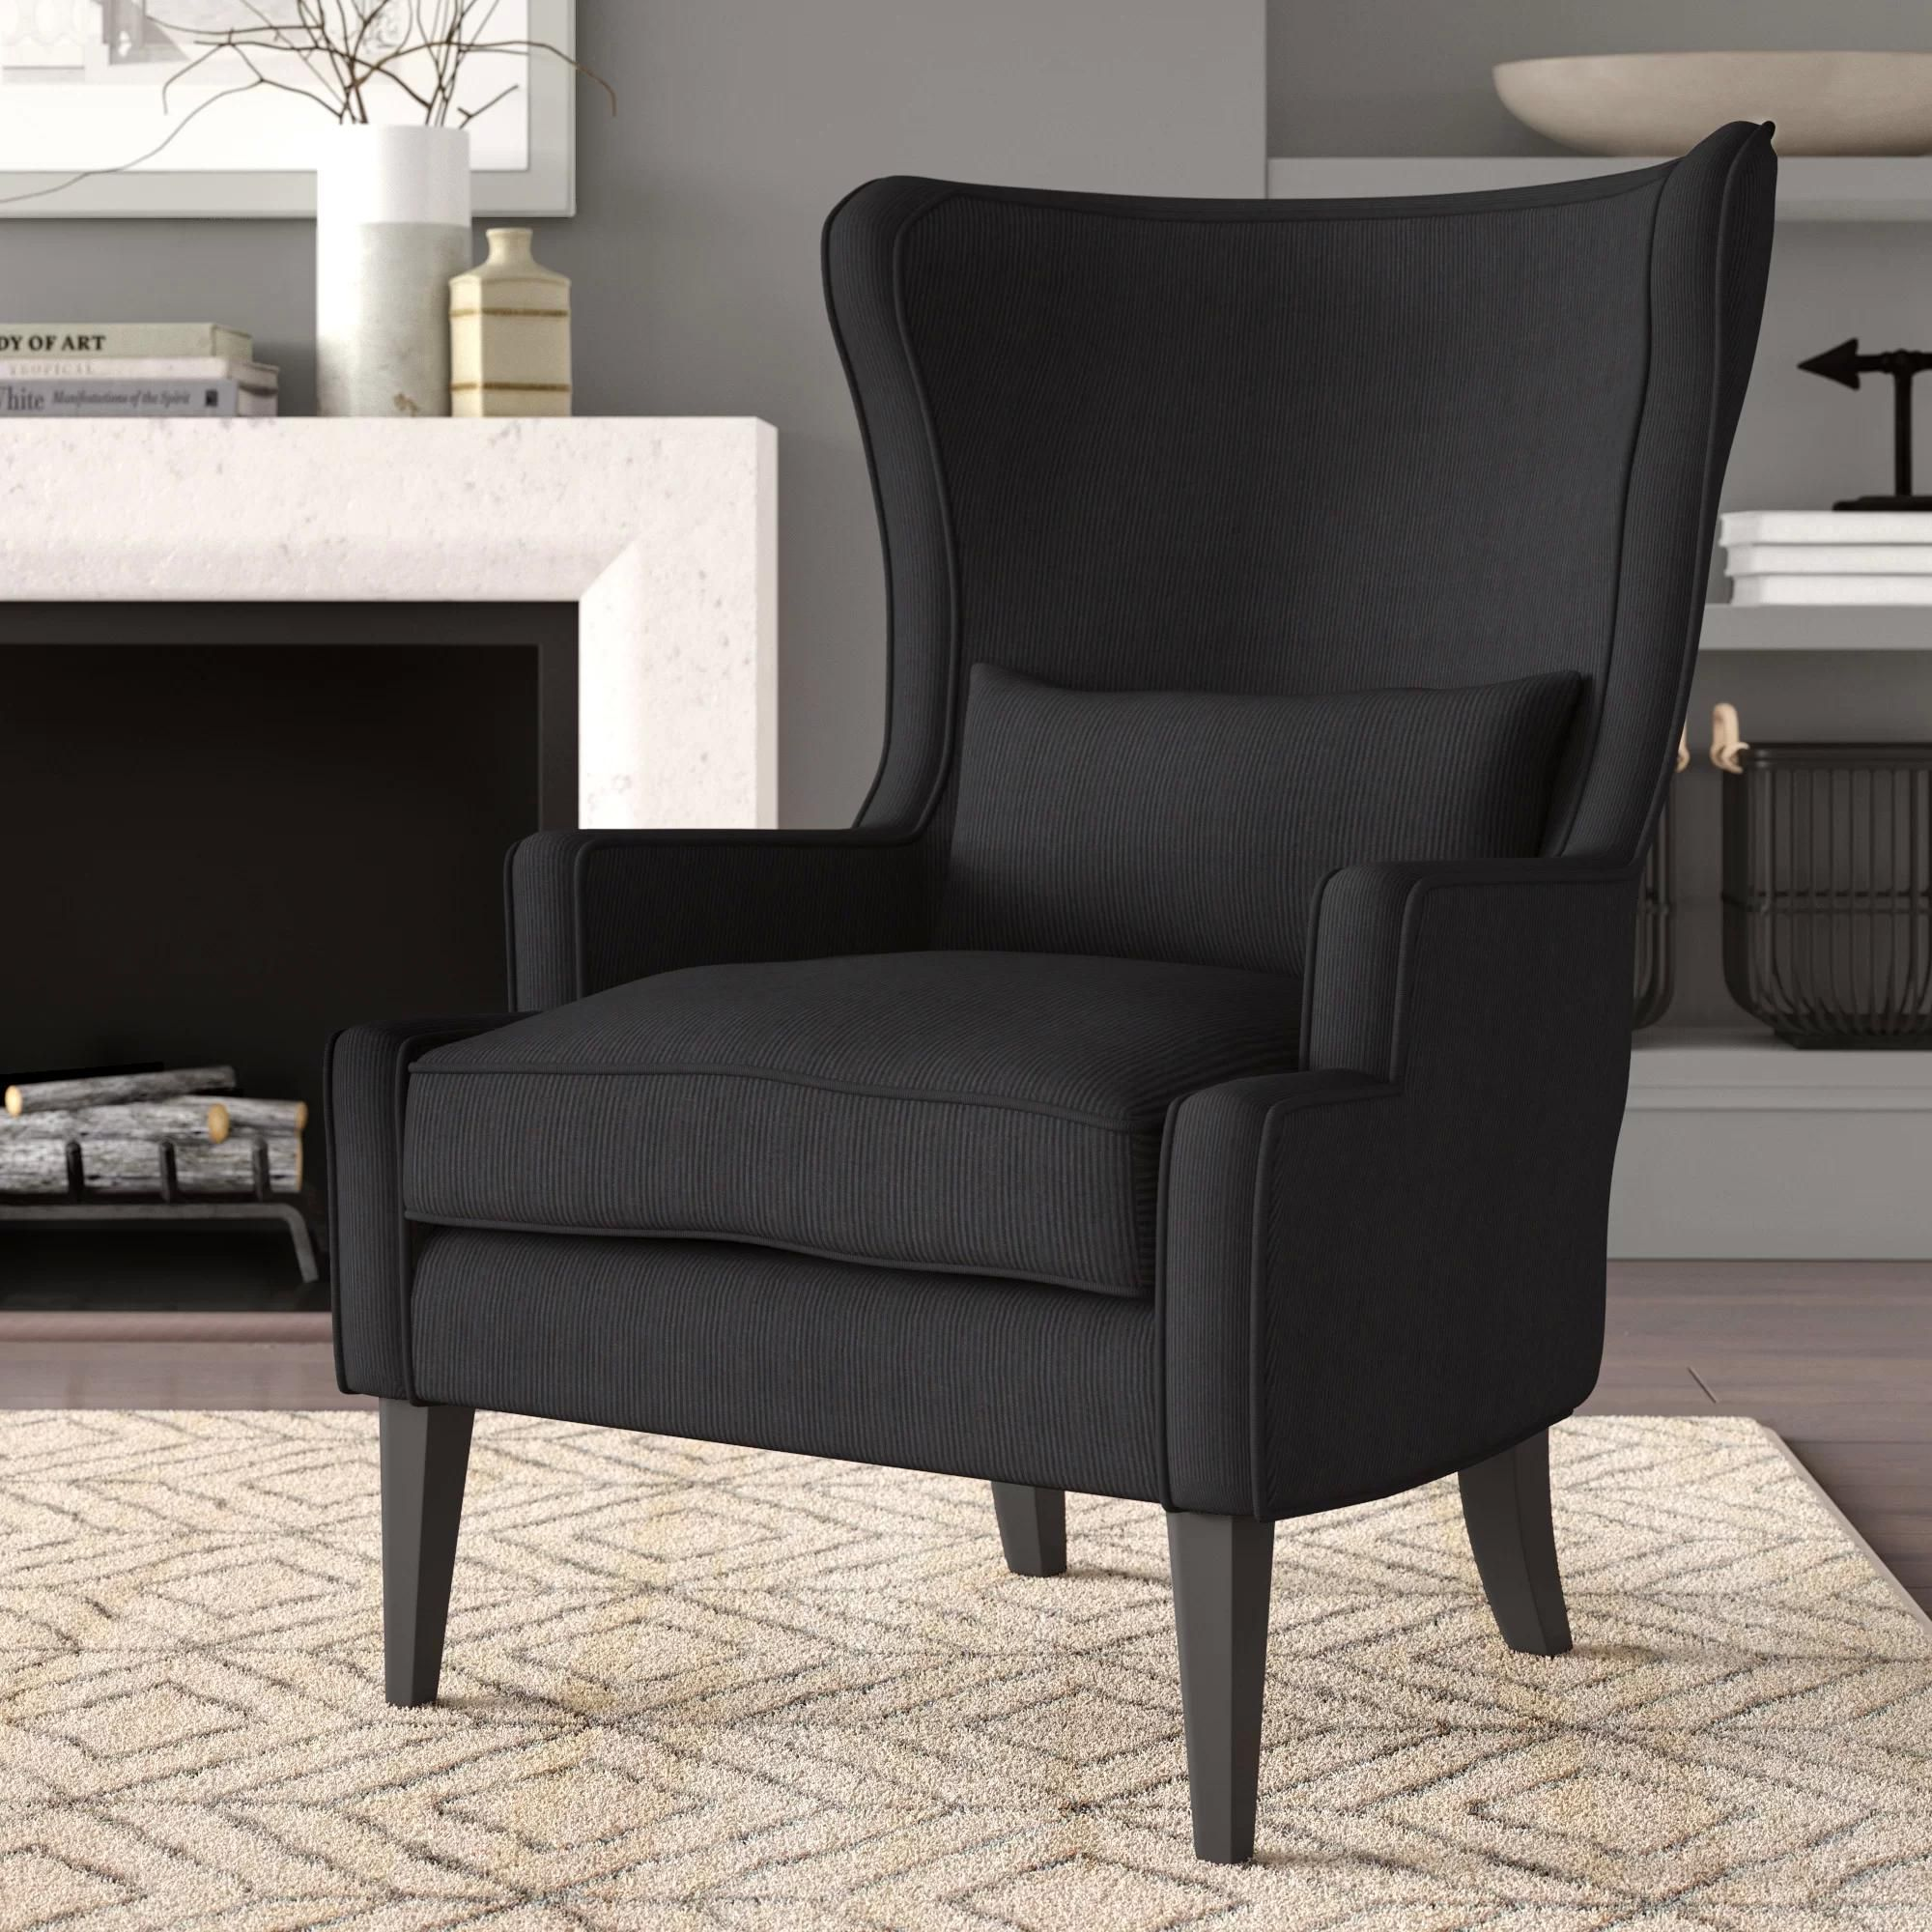 15 Different Types Of Accent Chairs For Any Room In Your Home Wingback Chair Chair Accent Chairs